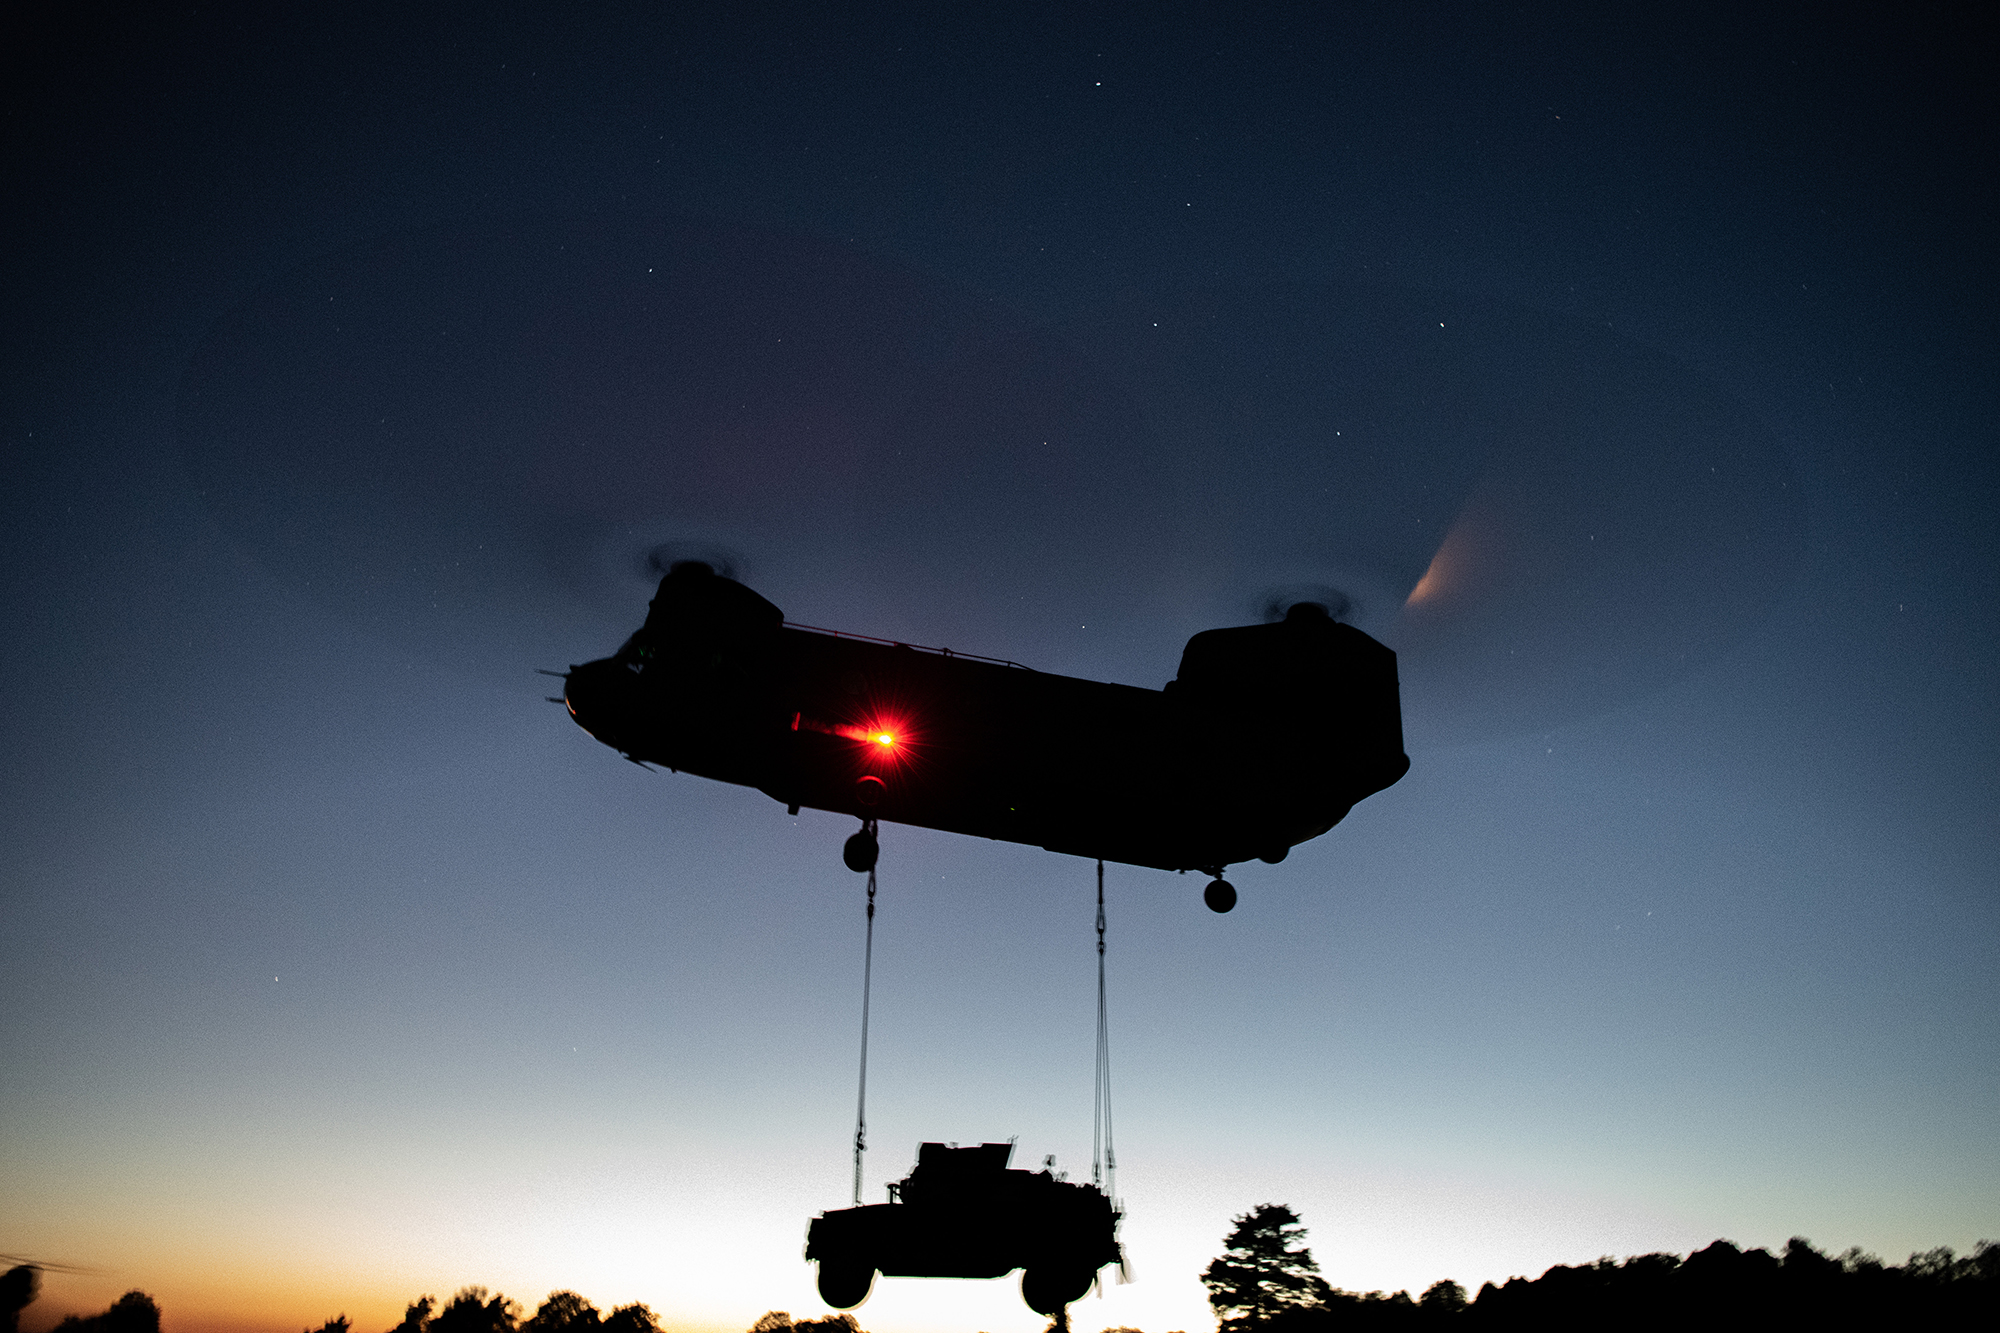 U.S. Army paratroopers perform night sling operations with a CH-47 Chinook in preparation for Exercise Saber Junction 20 on Aug. 5, 2020, as part of the 173rd Brigade Field Training Exercise in Grafenwoehr Training Area, Germany. (Sgt. John Yountz/Army)